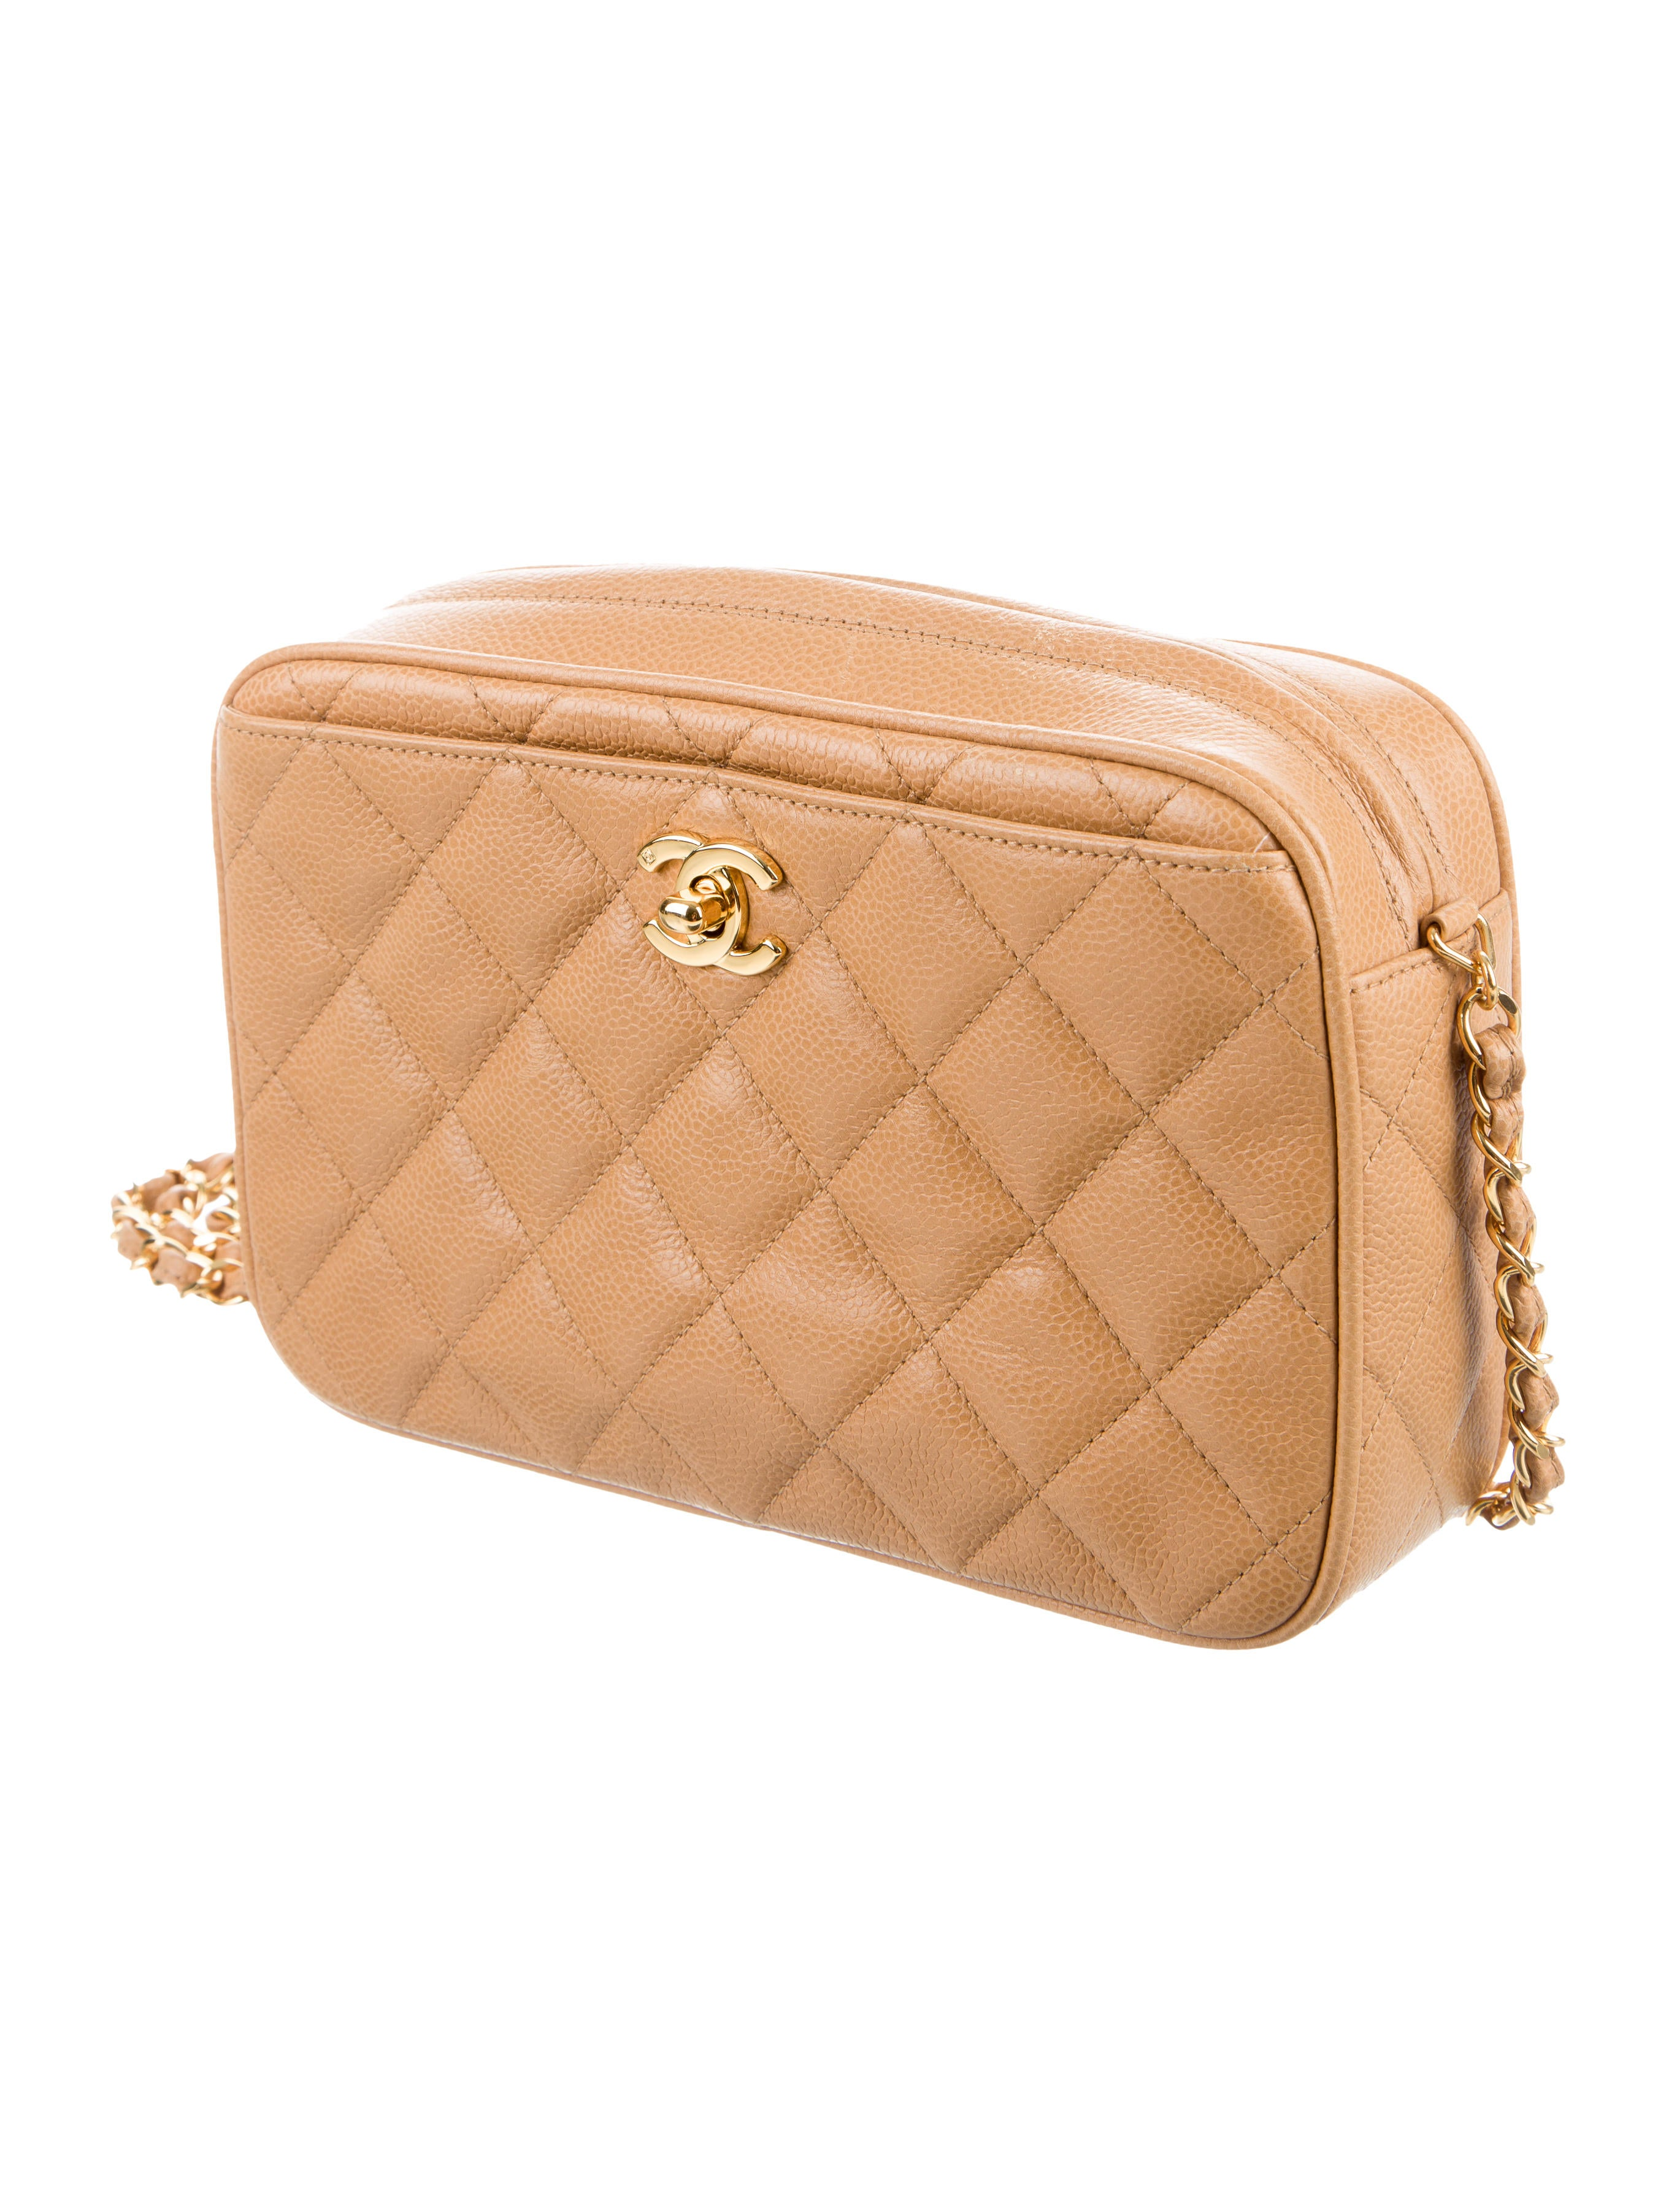 chanel vintage beige camera bag handbags cha188365